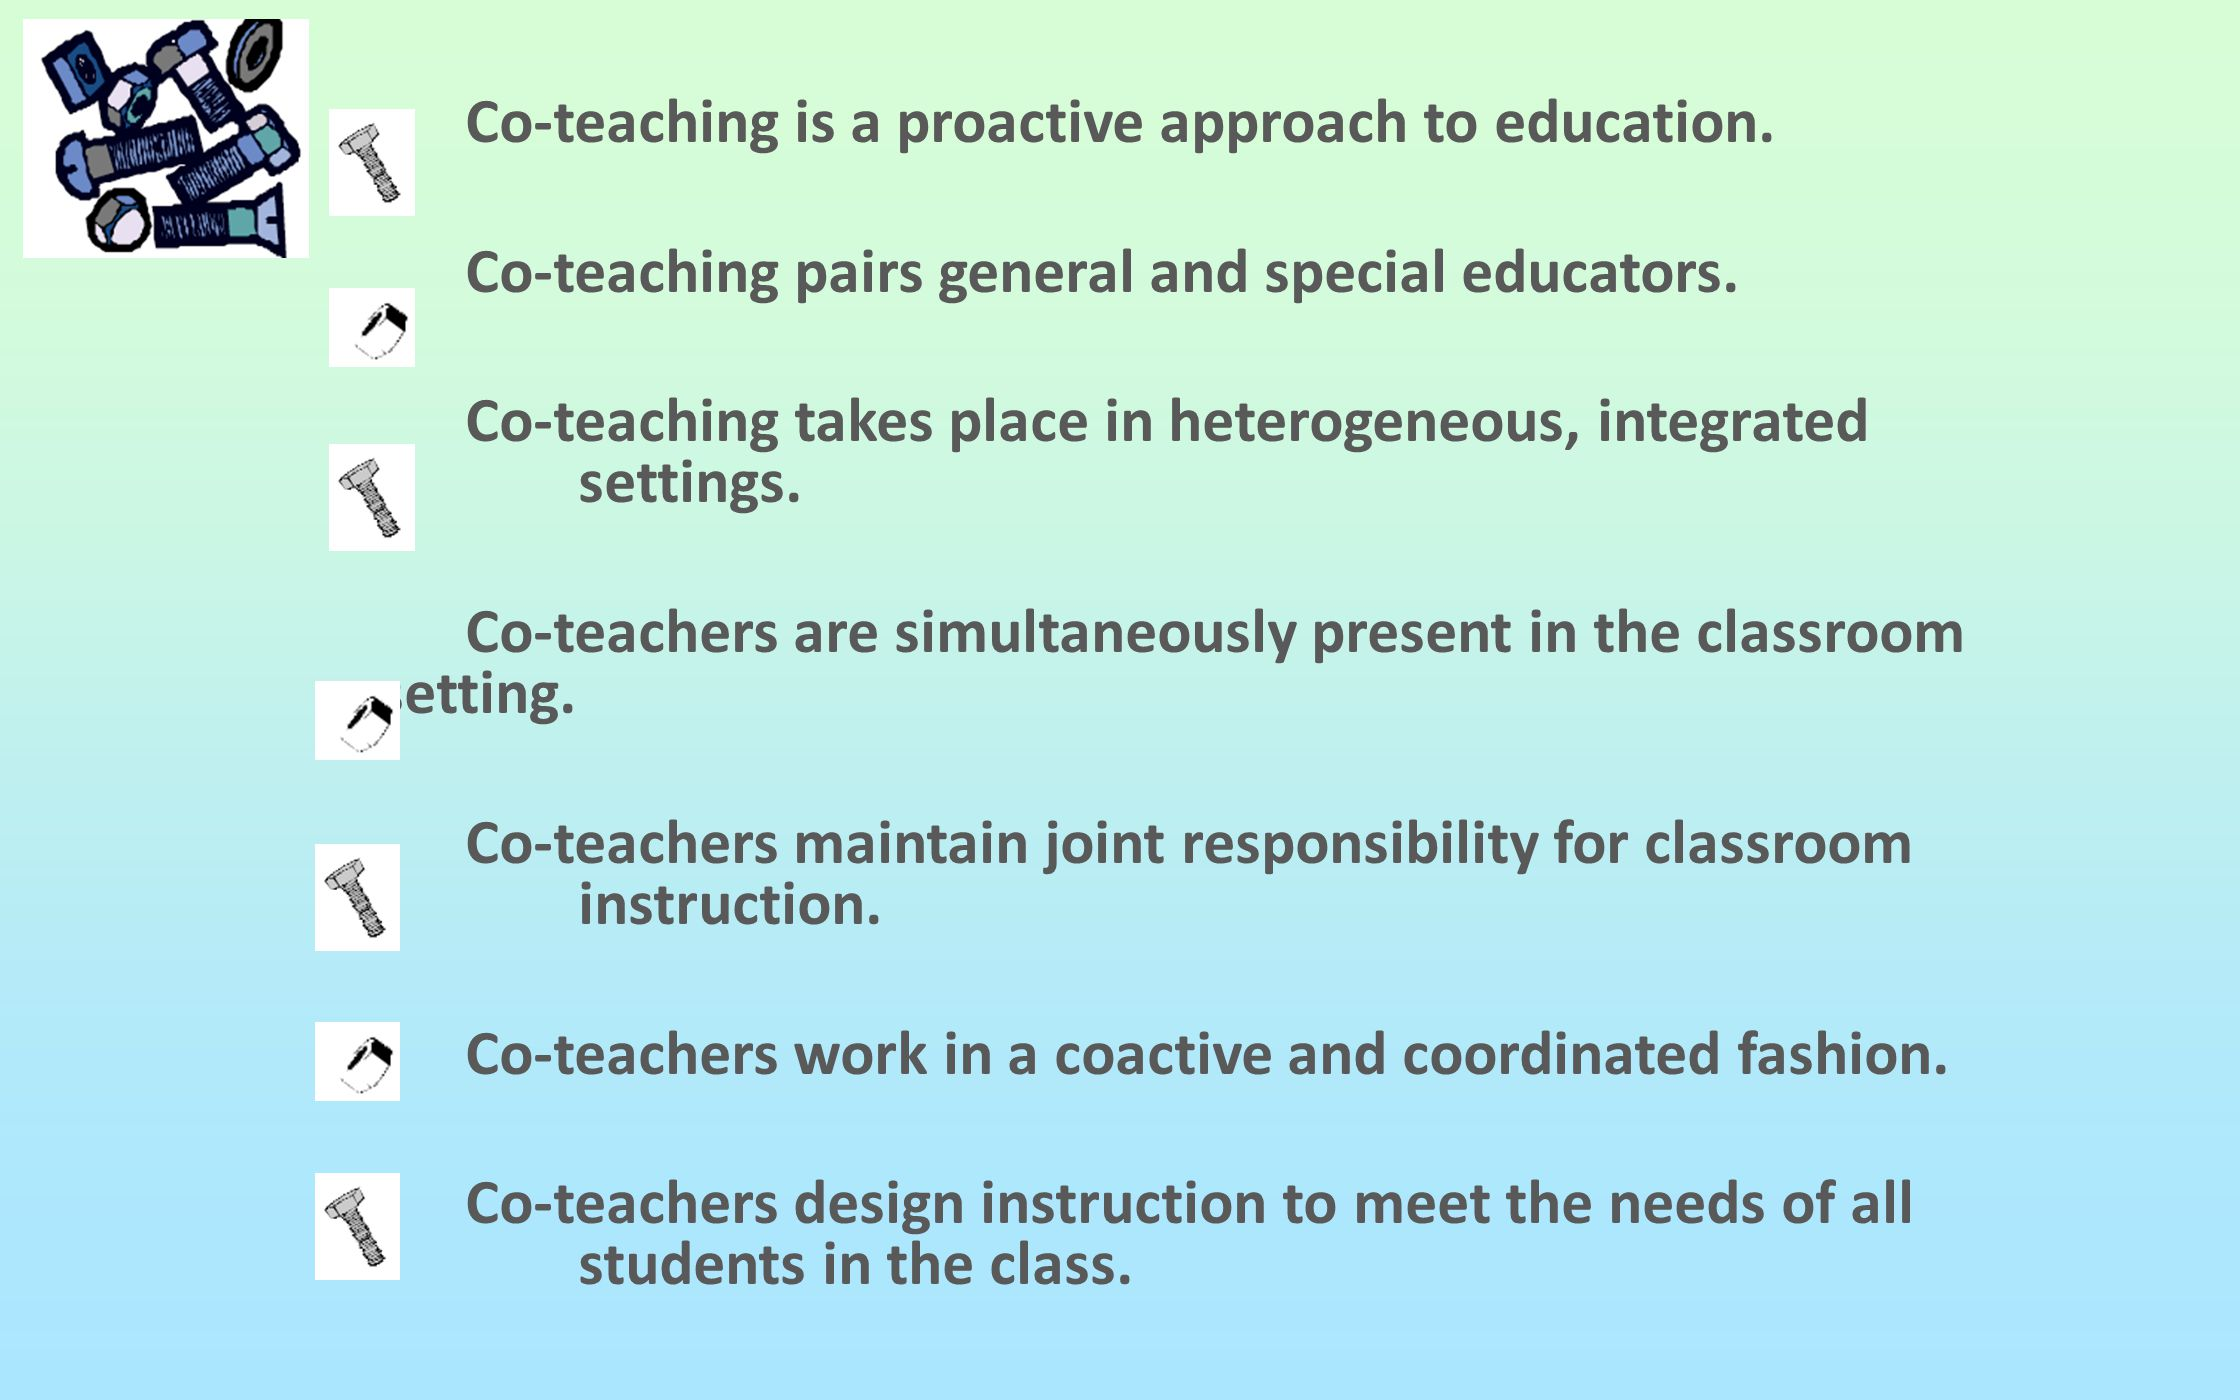 Co-teaching is a proactive approach to education. Co-teaching pairs general and special educators. Co-teaching takes place in heterogeneous, integrate